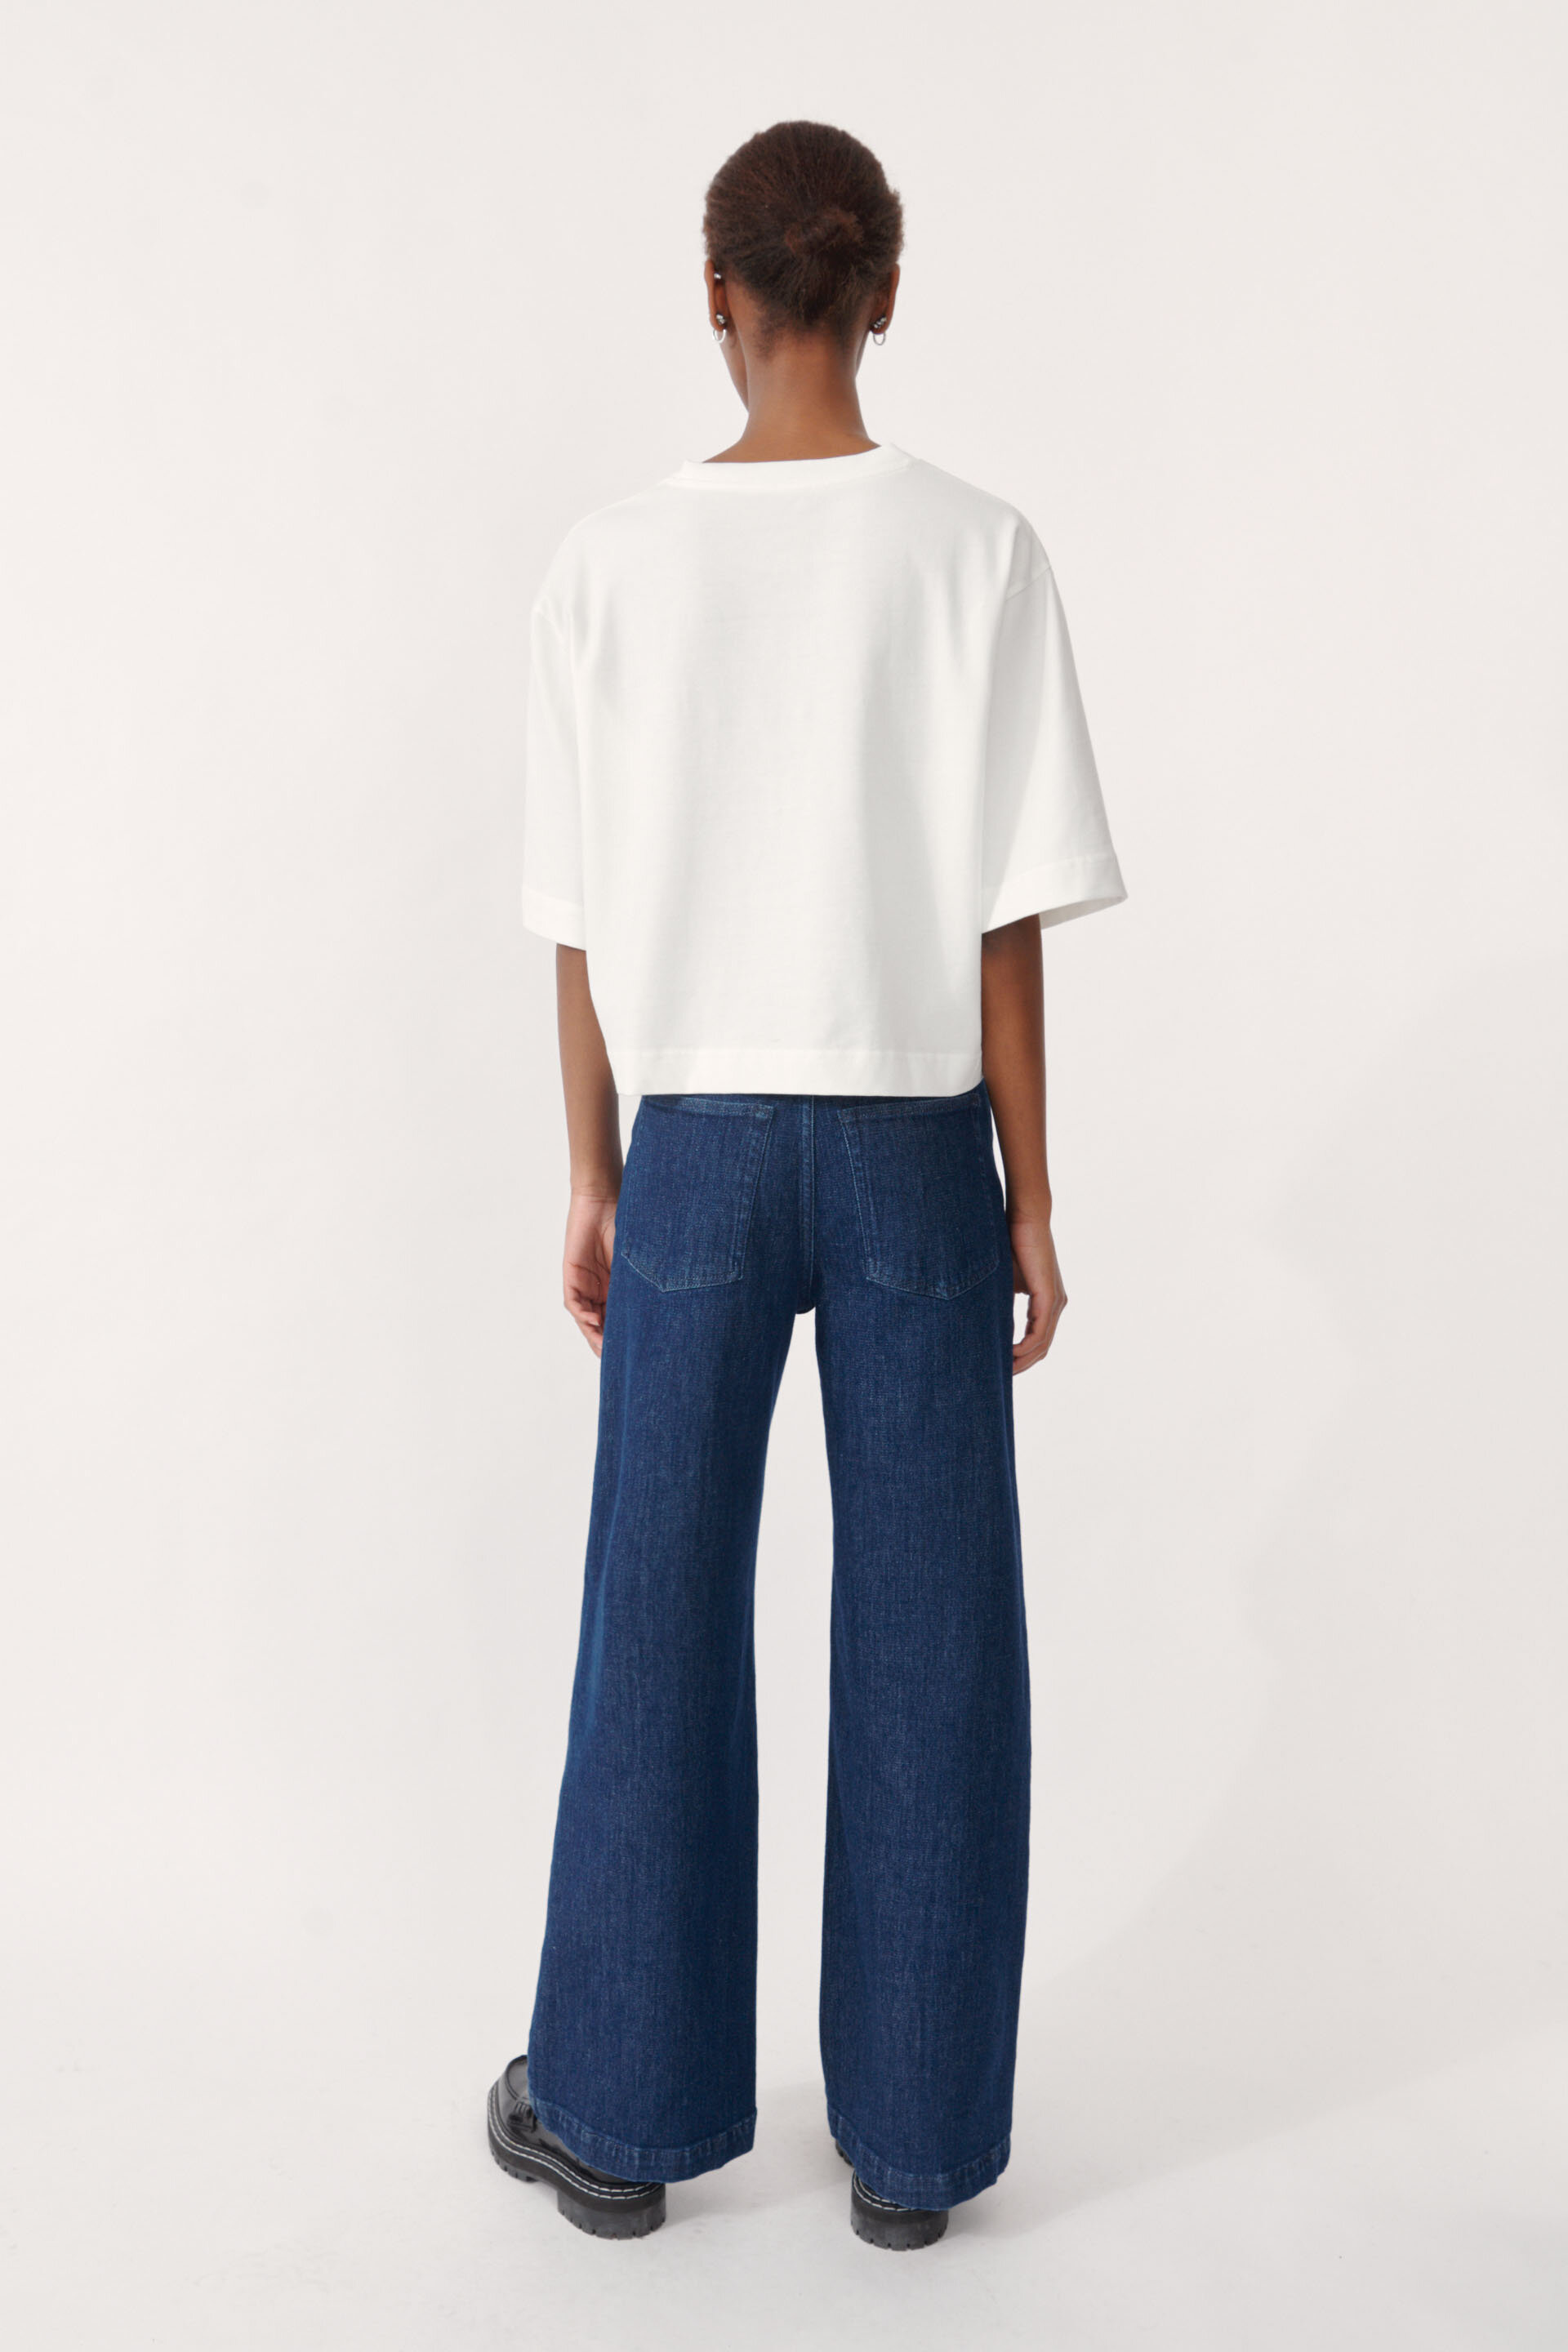 Jiana T-shirt White An oversized, boxy t-shirt with a cropped silhouette - detail image